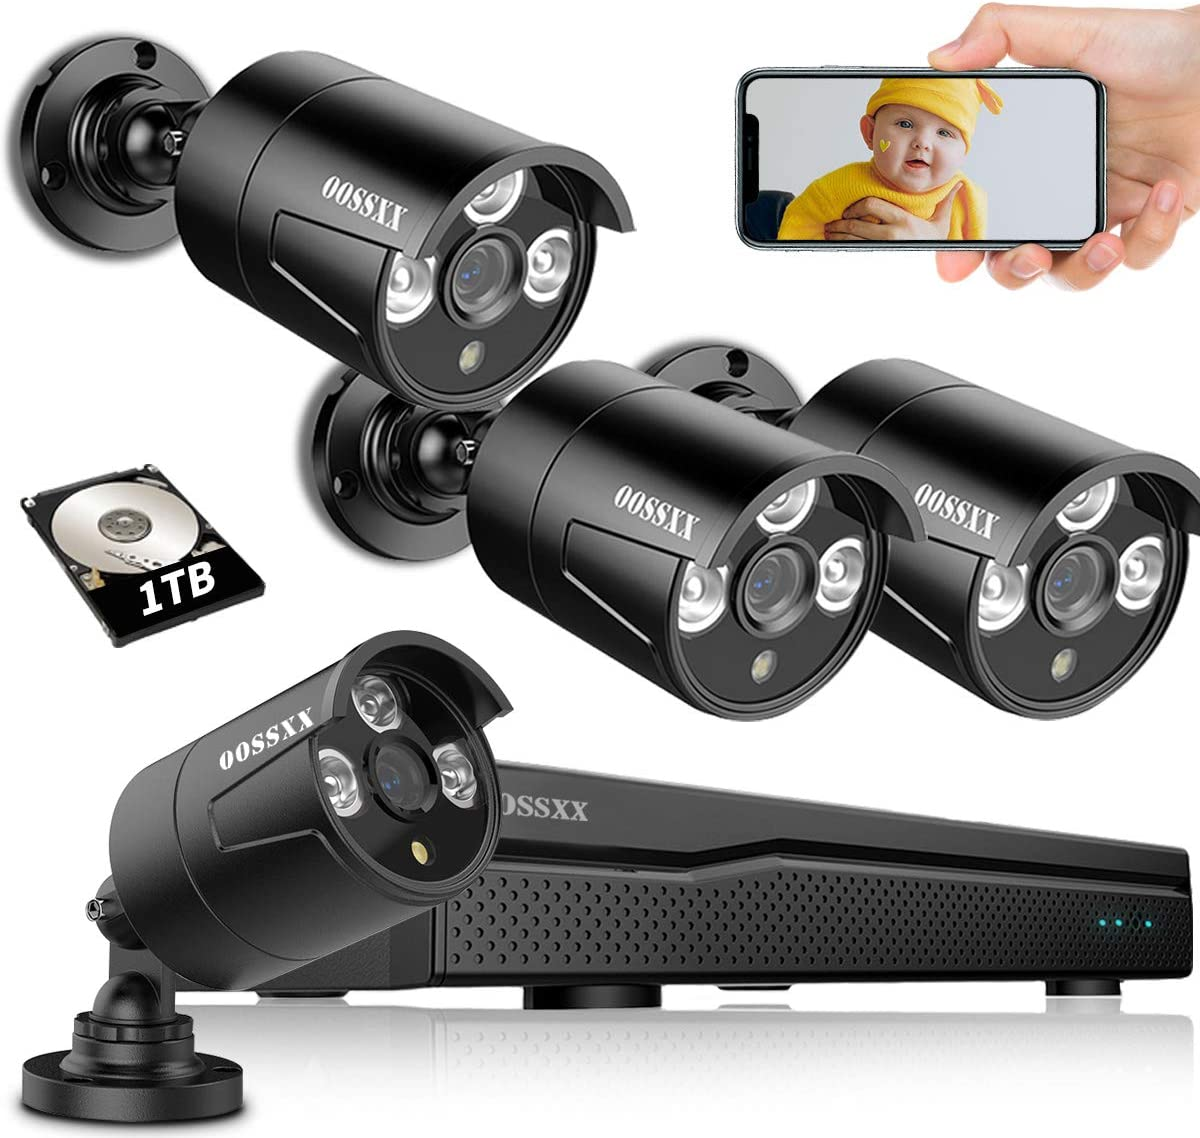 OOSSXX 5MP Lite 8CH Home Security Camera System with 1TB Hard Drive H.265+ DVR CCTV Recorder 4pcs HD 960P Outdoor Surveillance Cameras Night Vision Easy Remote Access Motion Alert Smart Playback